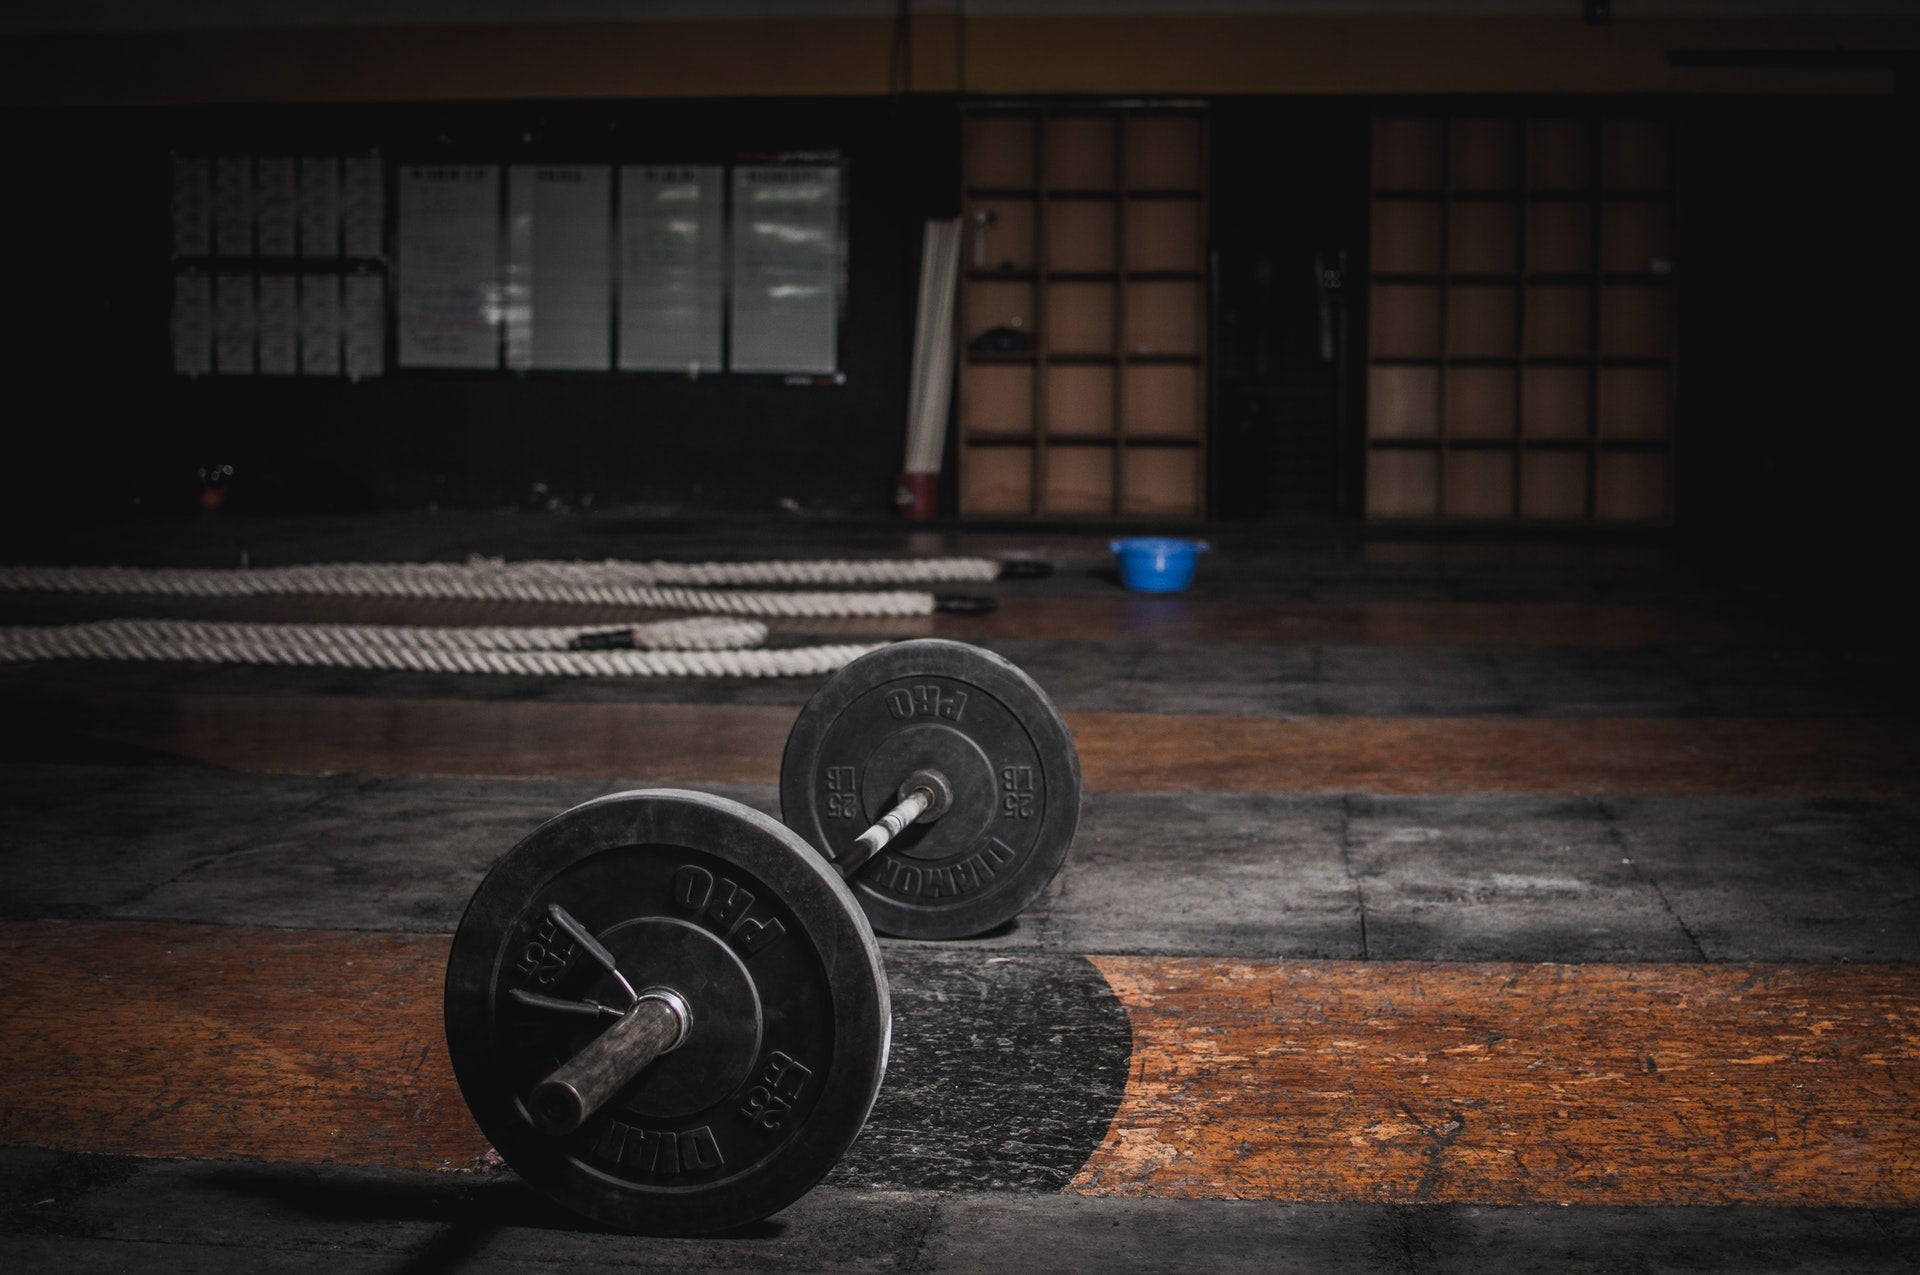 Barbell on the floor in an empty gym